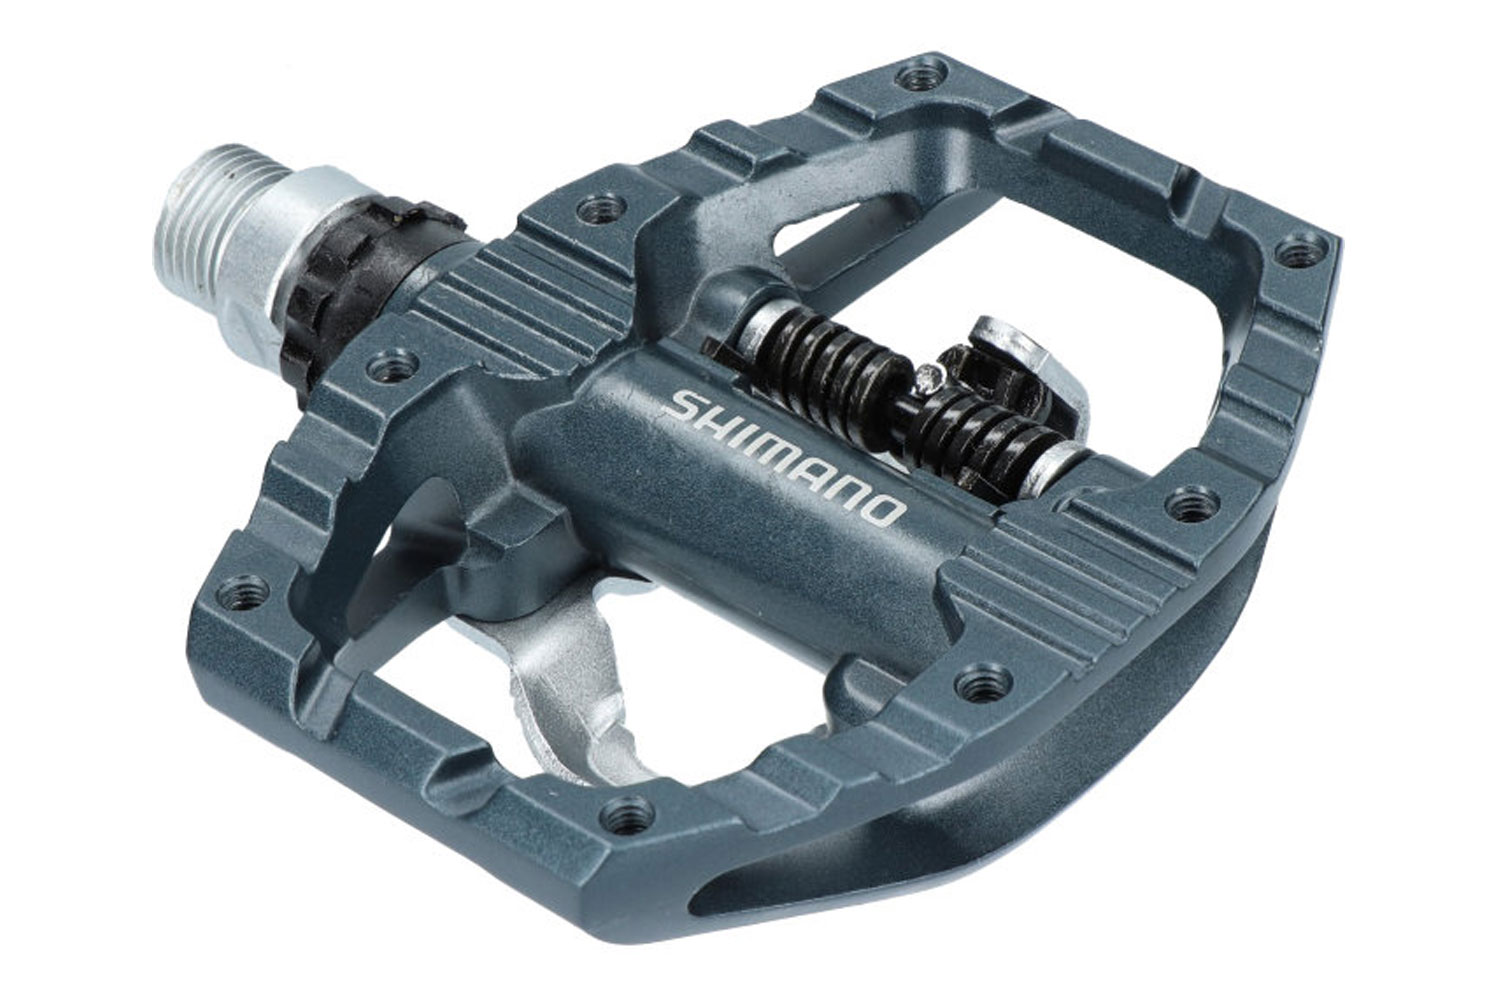 Shimano PD-EH500 SPD-Pedale